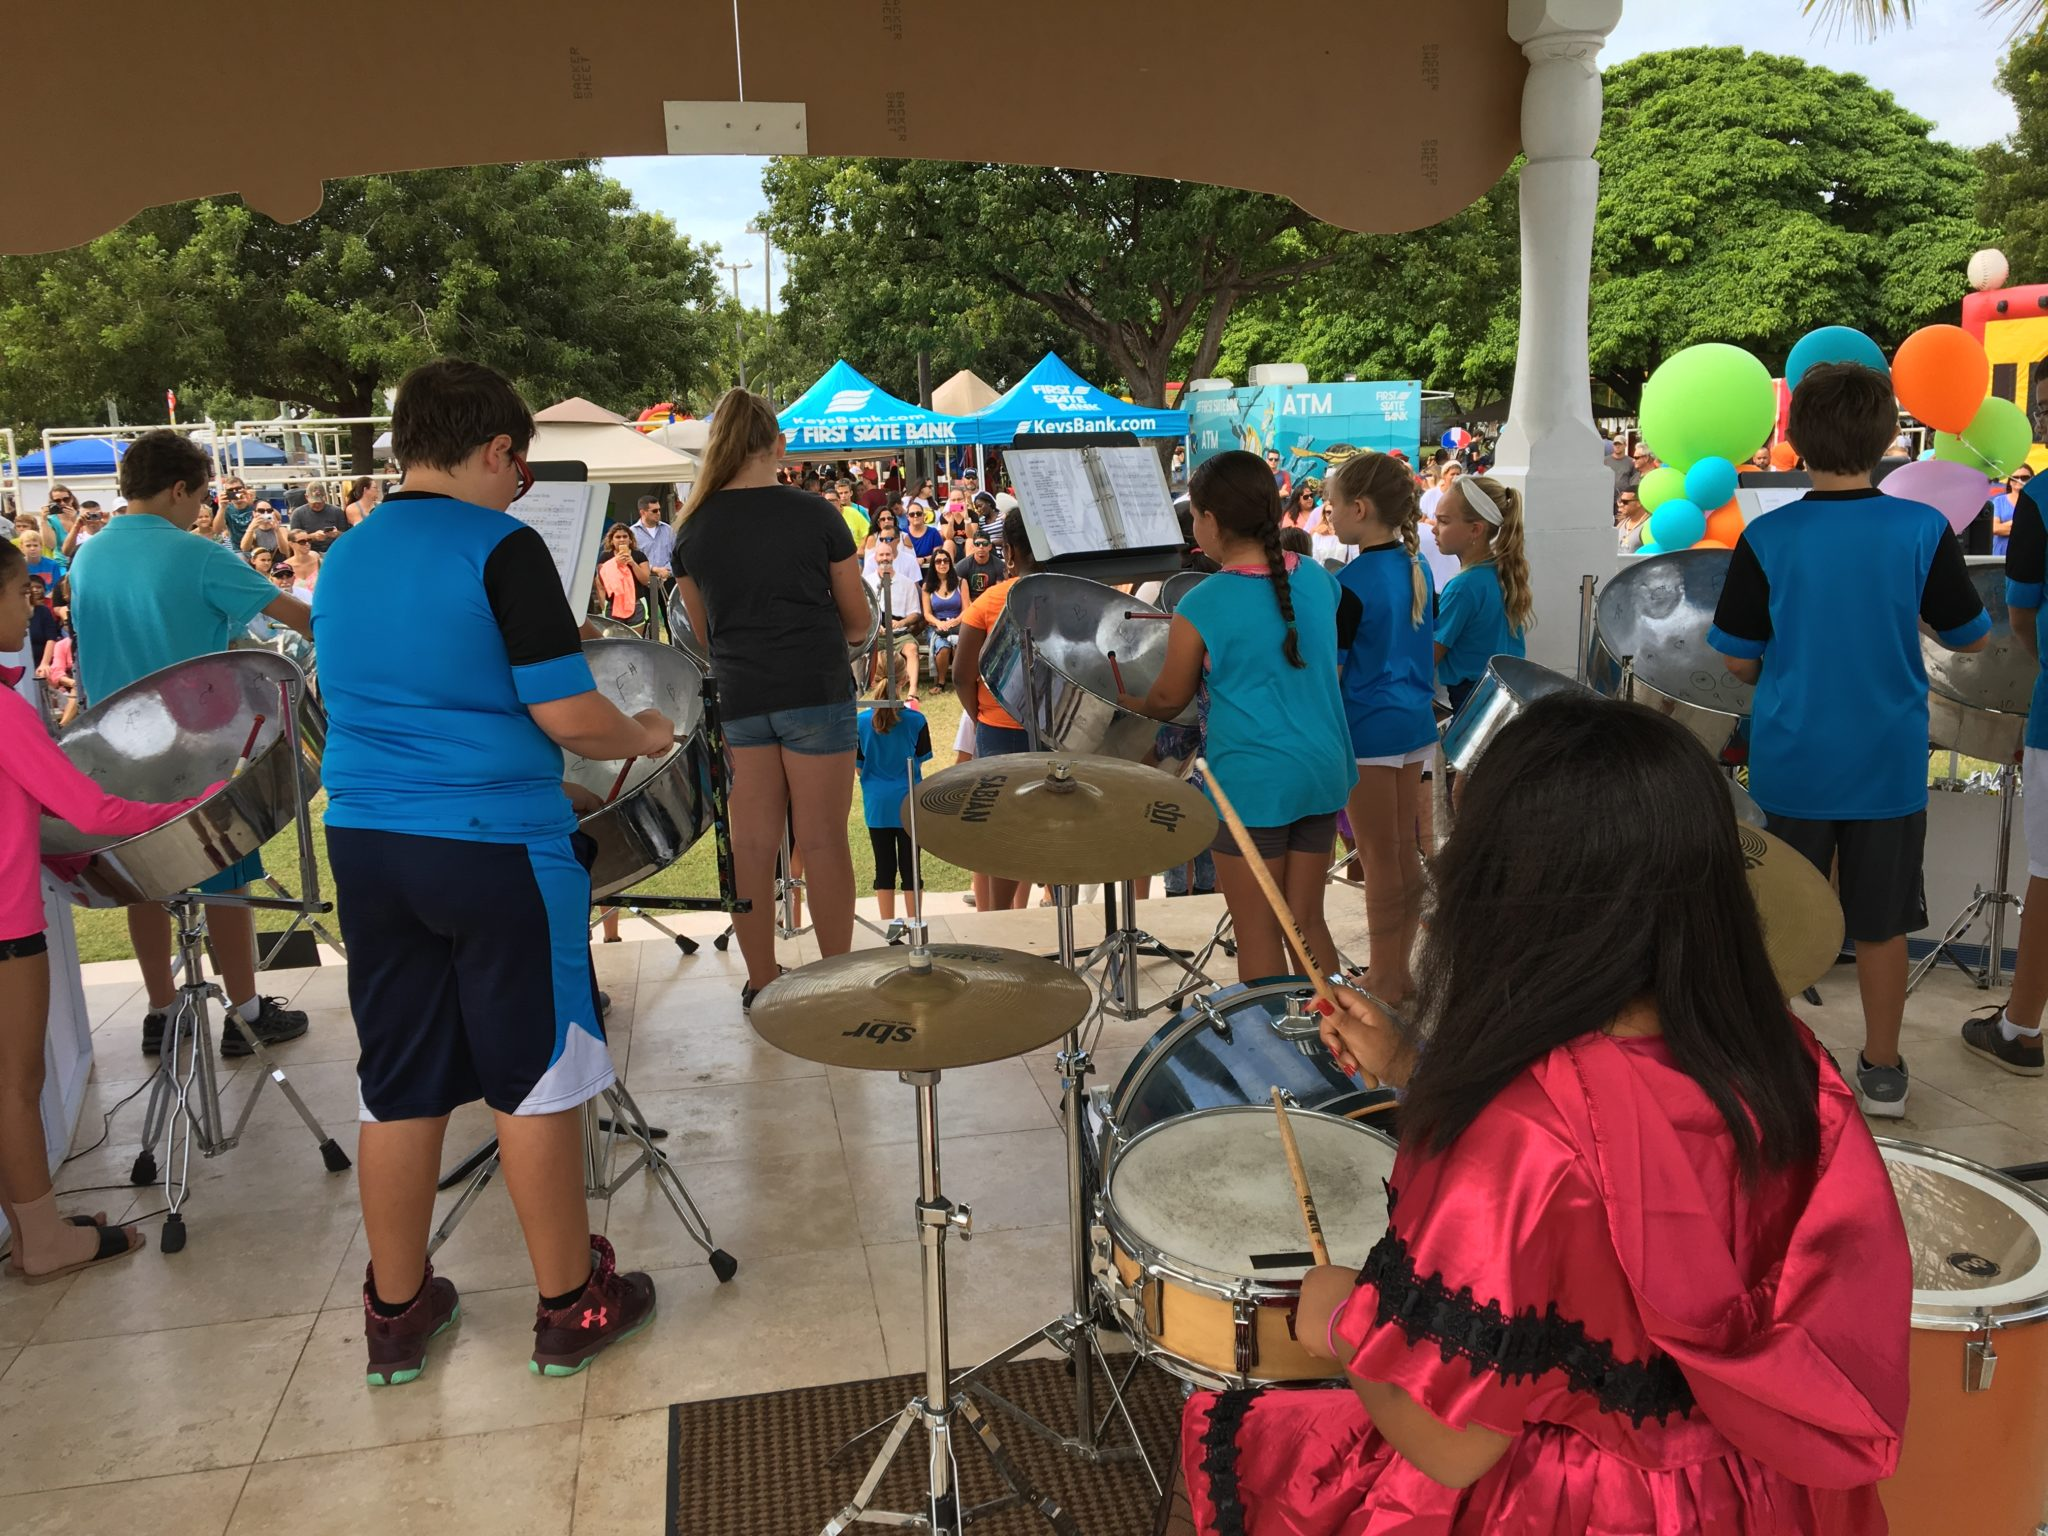 The Gerald Adams' Steel Your Heart Band plays 'Three Little Birds' on the steel pans.